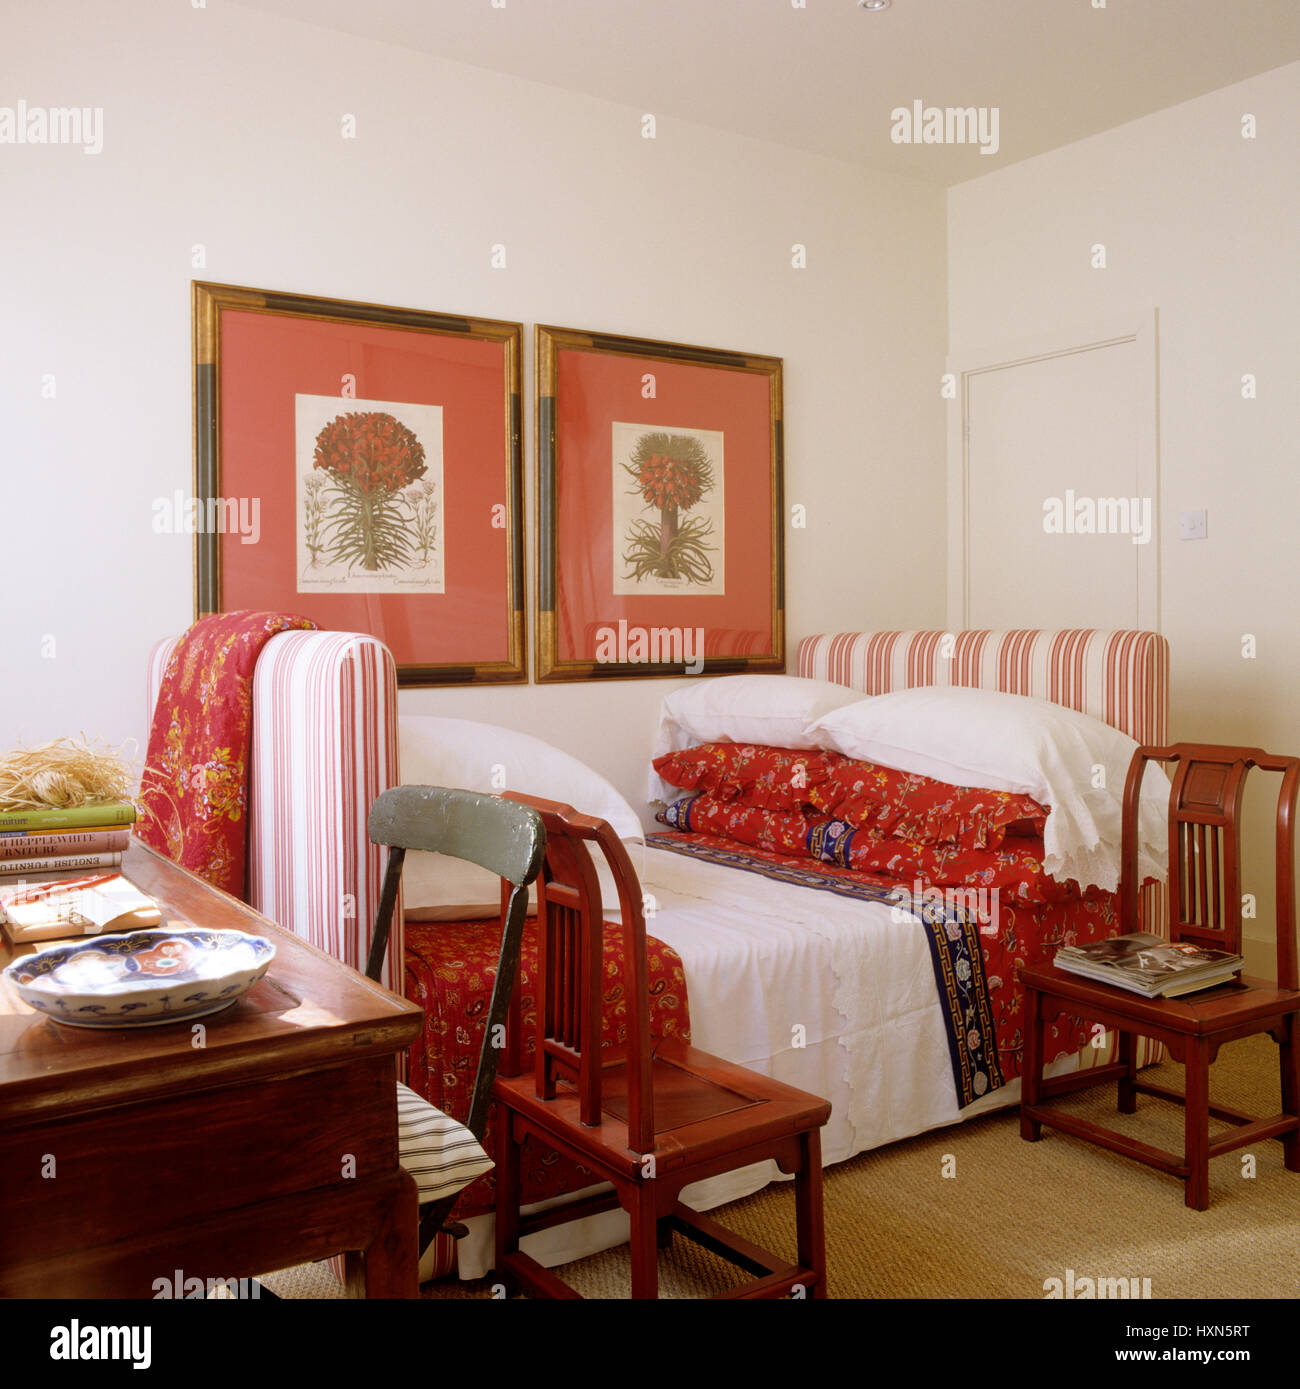 White Lacquered Furniture. Bedroom With Red Accents.   Stock Image White  Lacquered Furniture